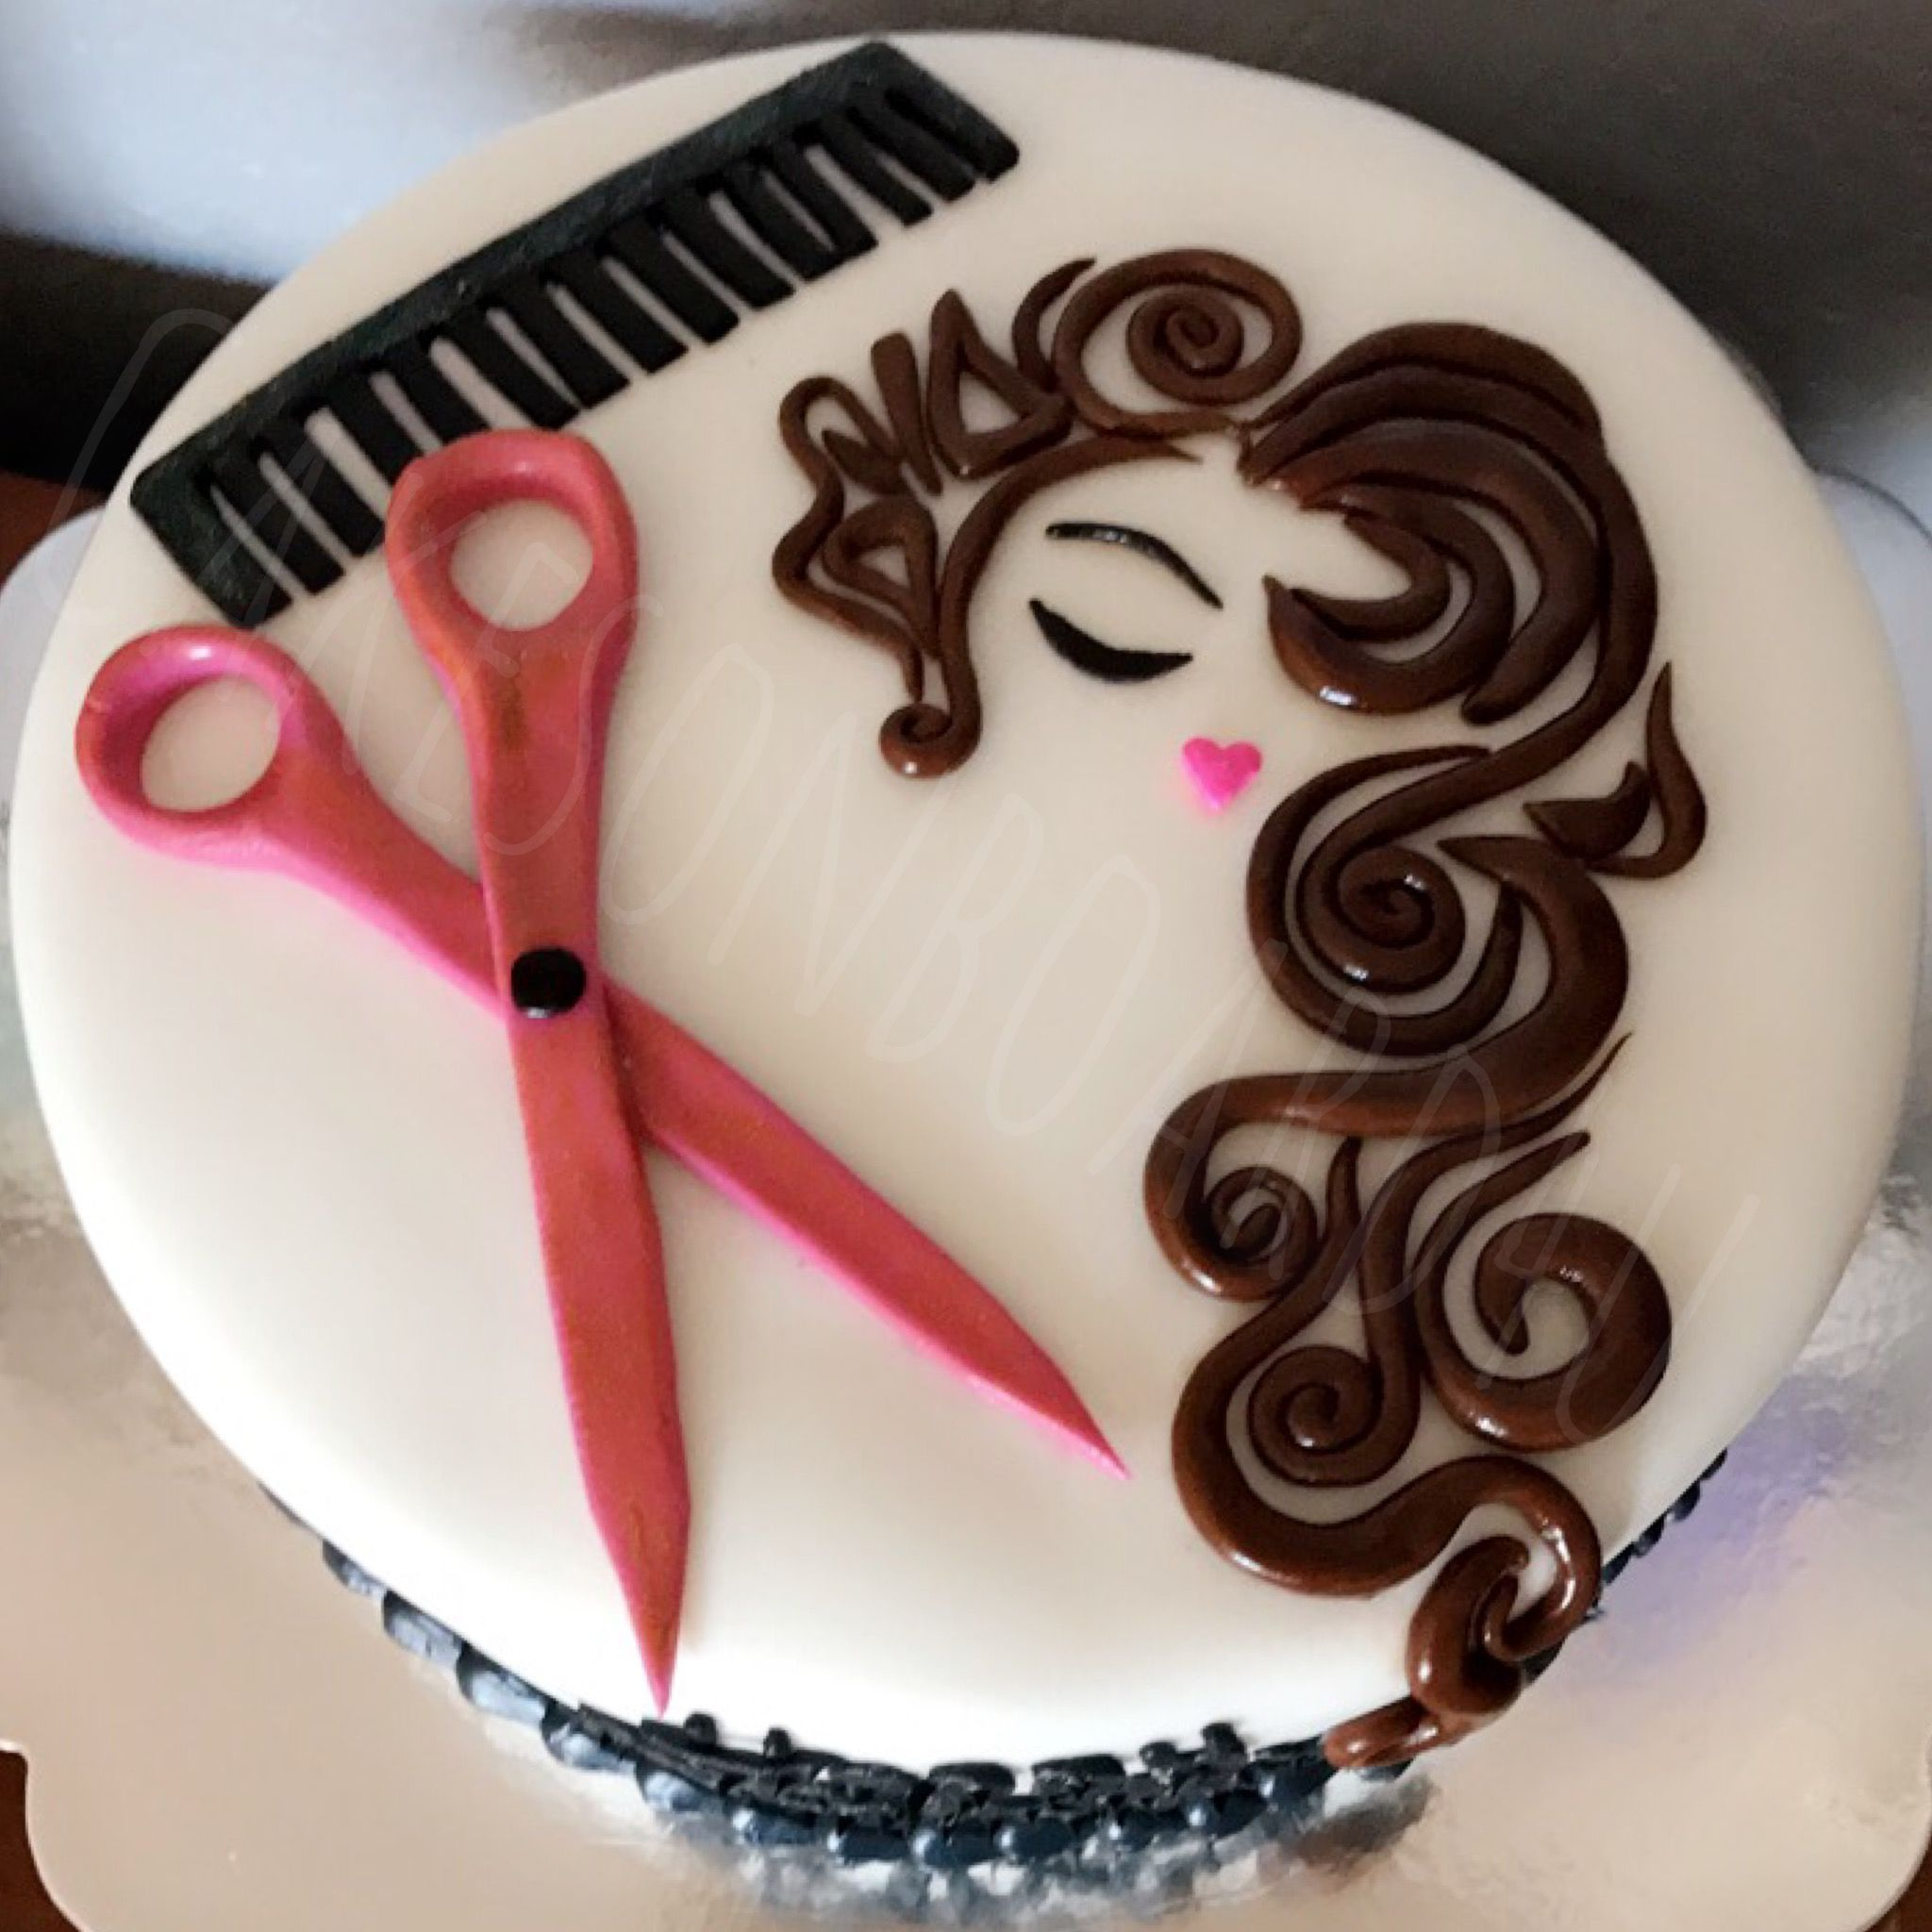 Hairdresser Cake Scissors Comb Face Hairdresser Cake Easy Cake Decorating Cupcake Cakes